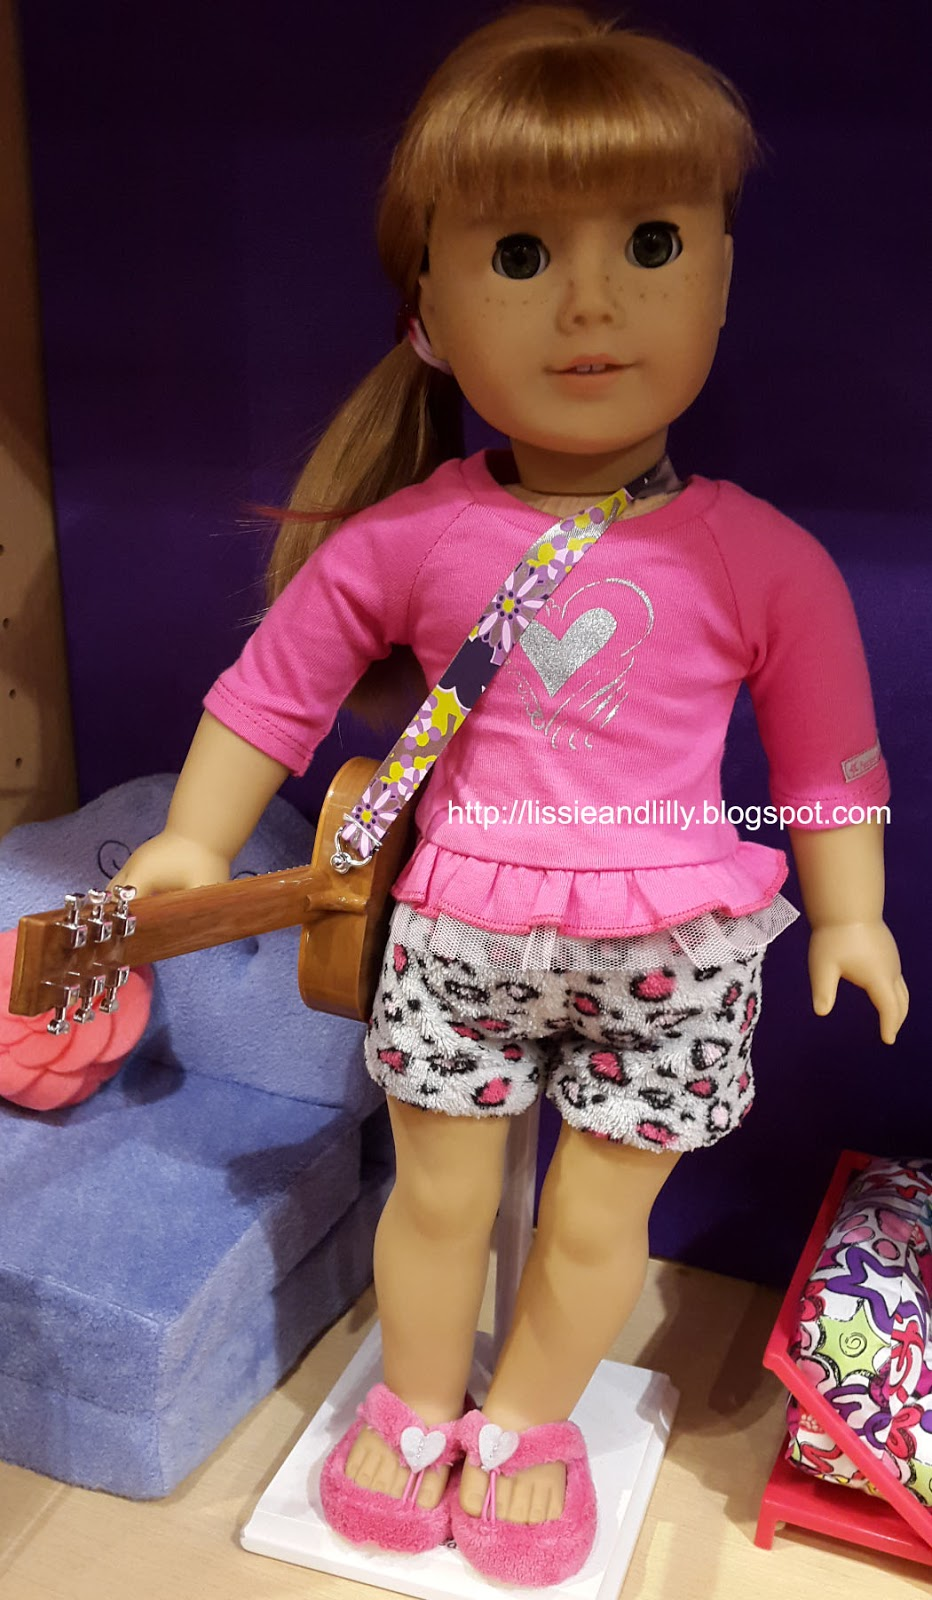 Lissie Amp Lilly Store Photos Of Myag Outfits Accessories